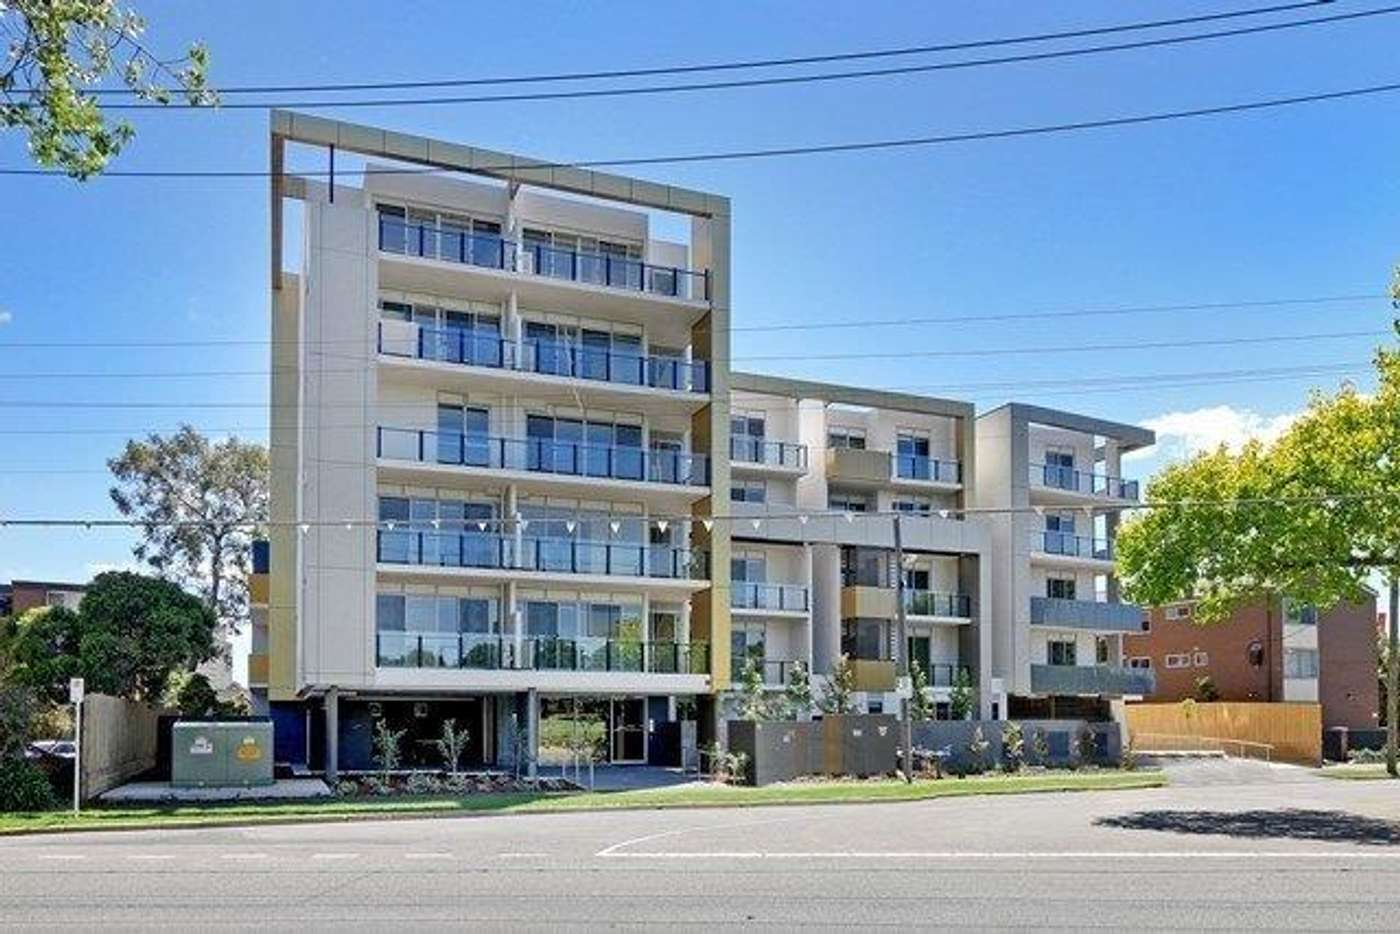 Main view of Homely apartment listing, 26/109 Manningham Street, Parkville VIC 3052